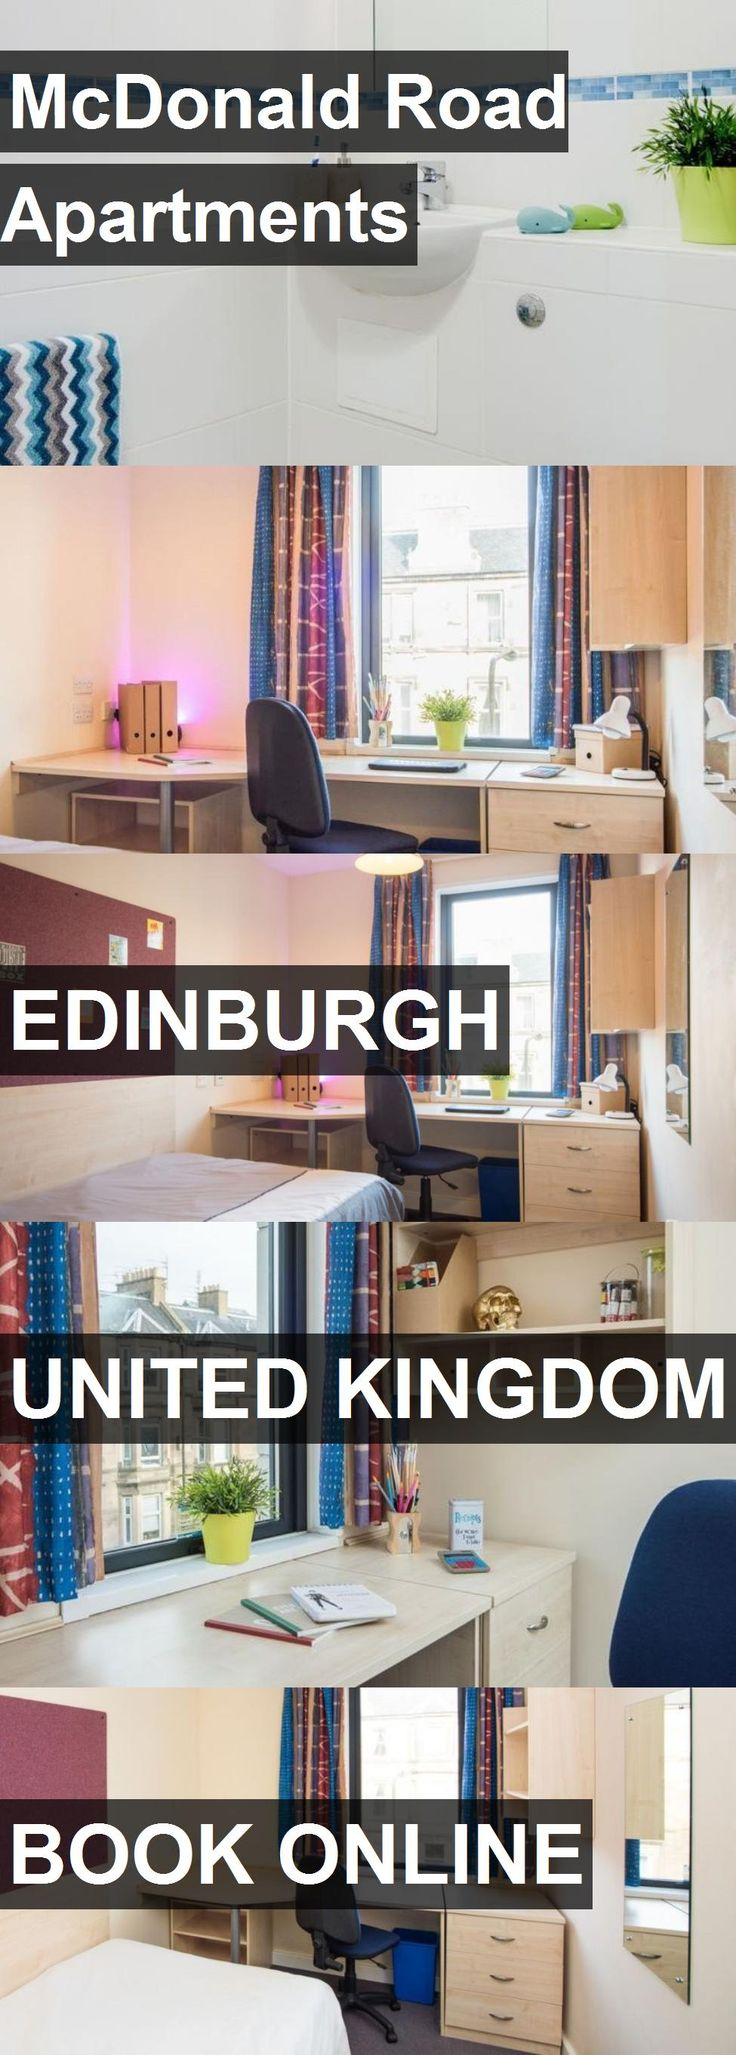 McDonald Road Apartments in Edinburgh, United Kingdom. For more information, photos, reviews and best prices please follow the link. #UnitedKingdom #Edinburgh #travel #vacation #apartment